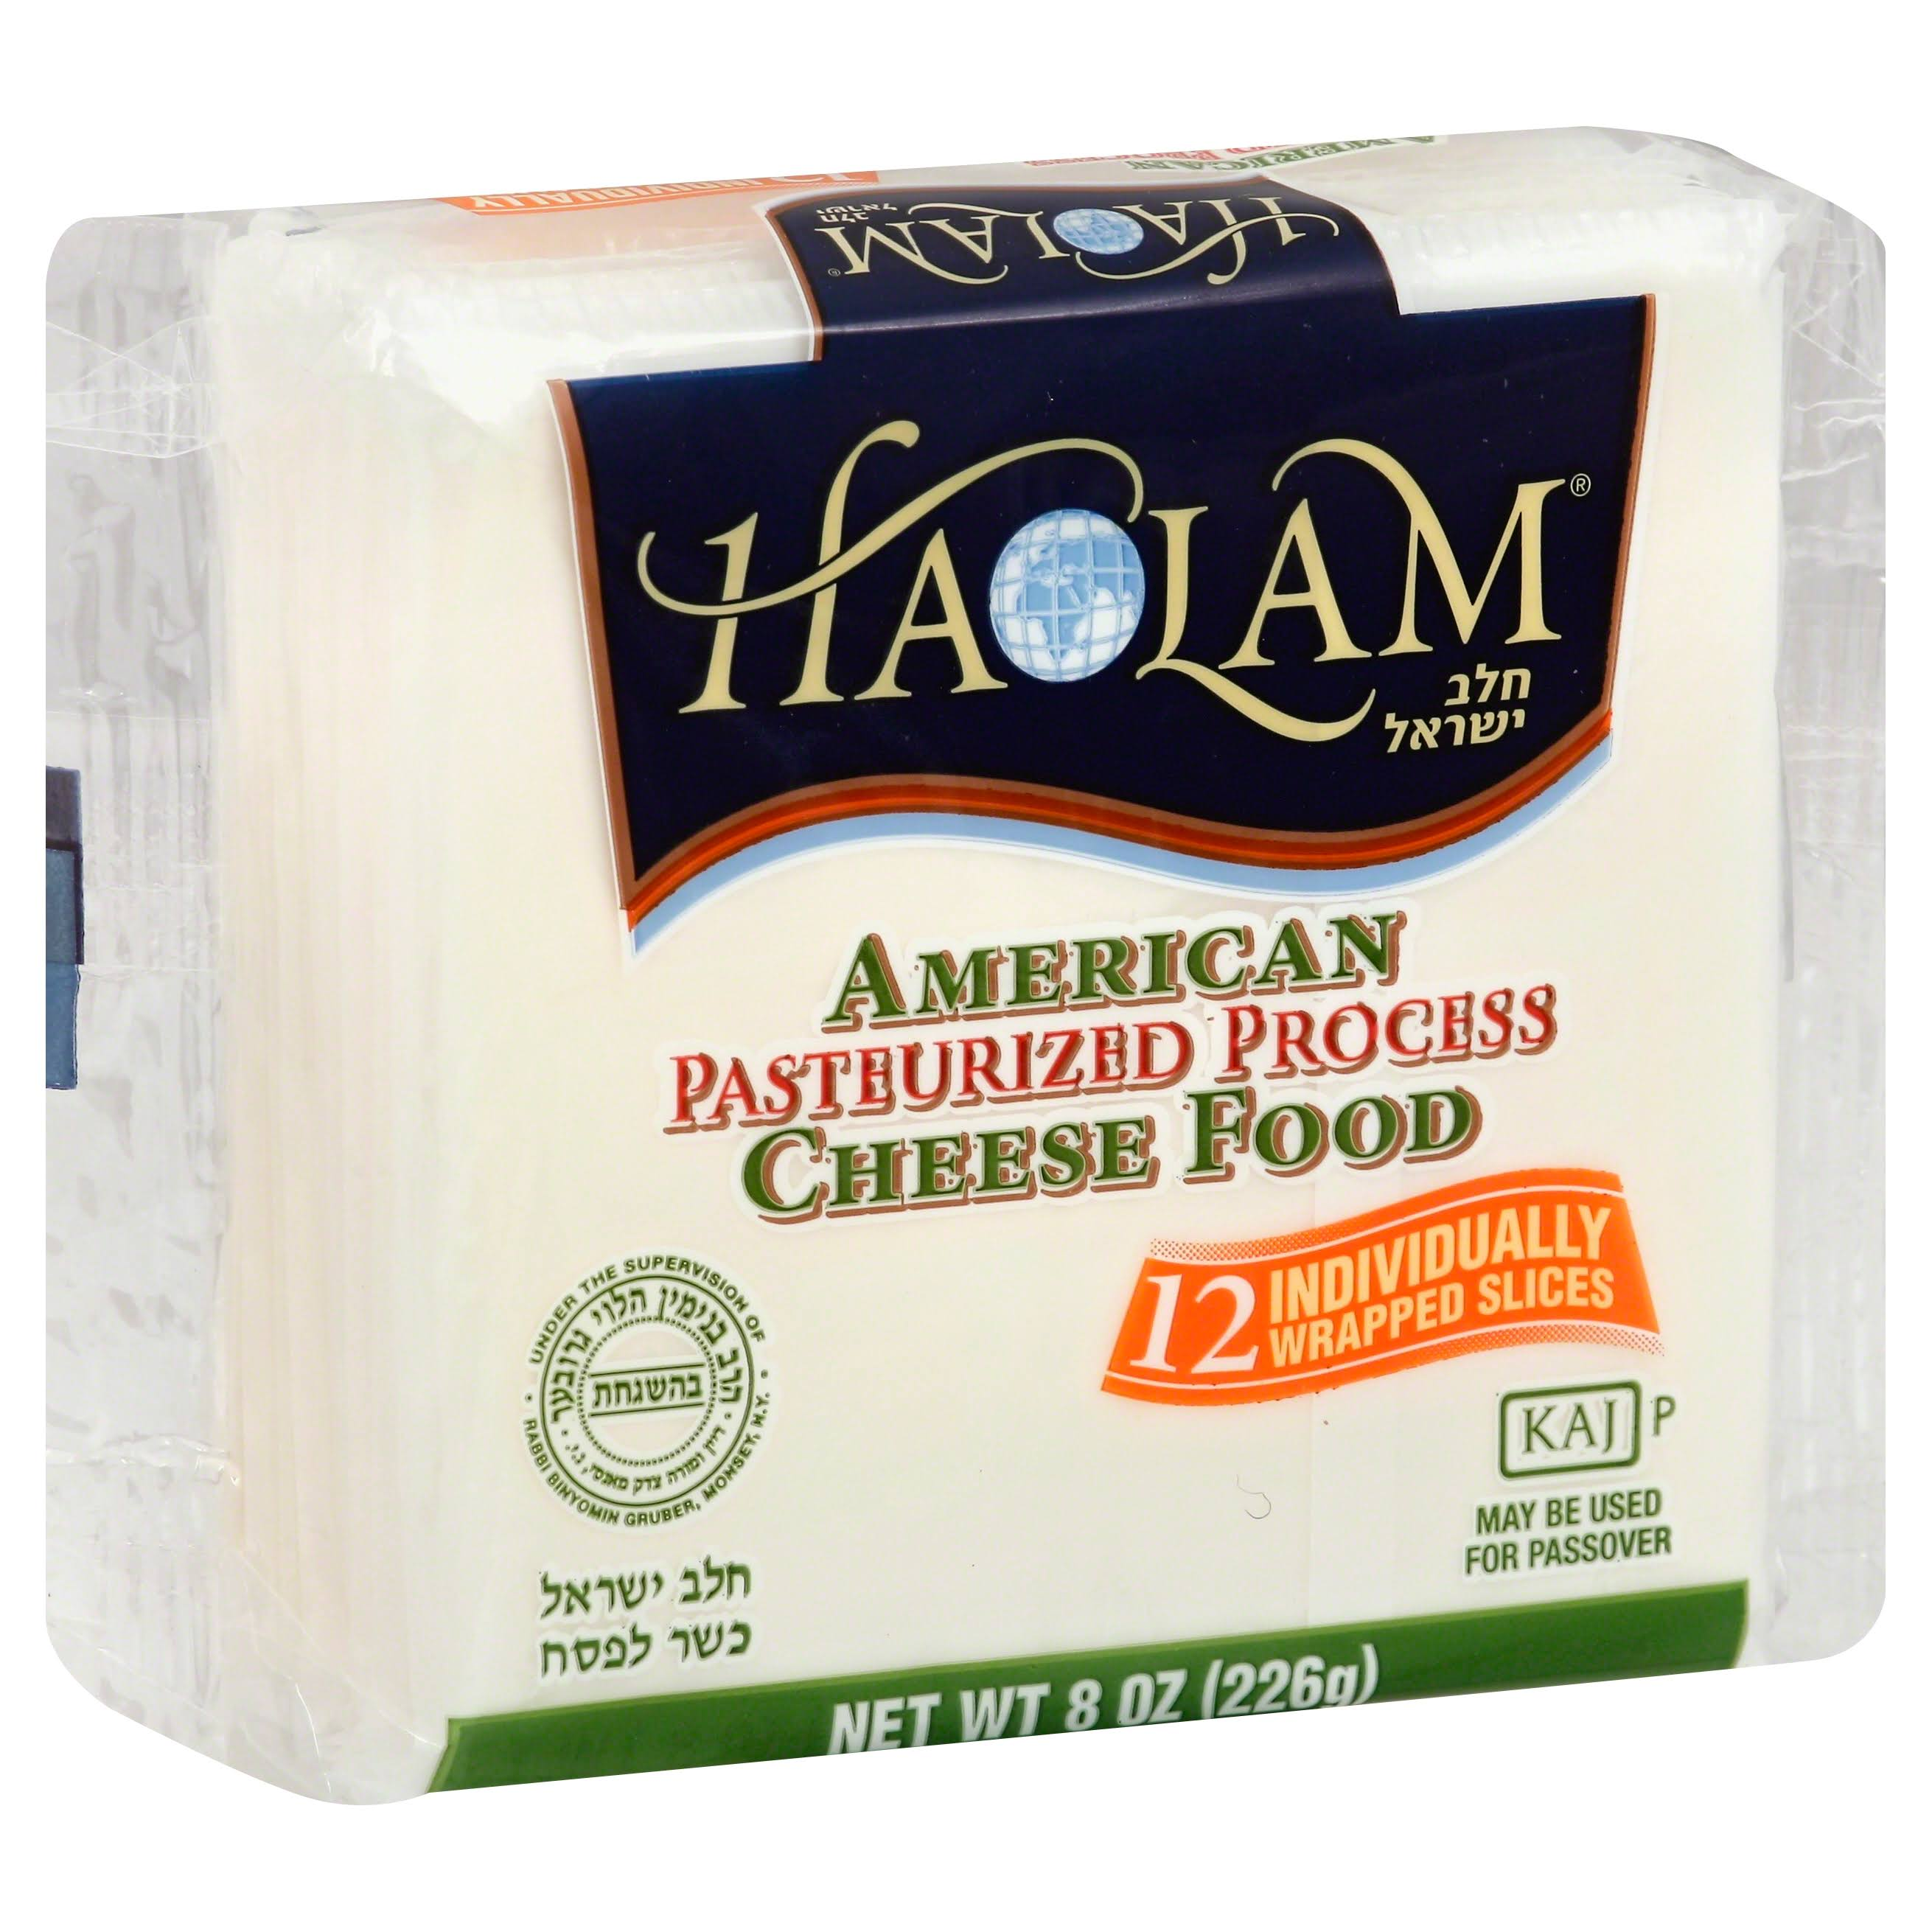 Haolam Cheese Food, Pasteurized Process, American - 12 slices, 8 oz